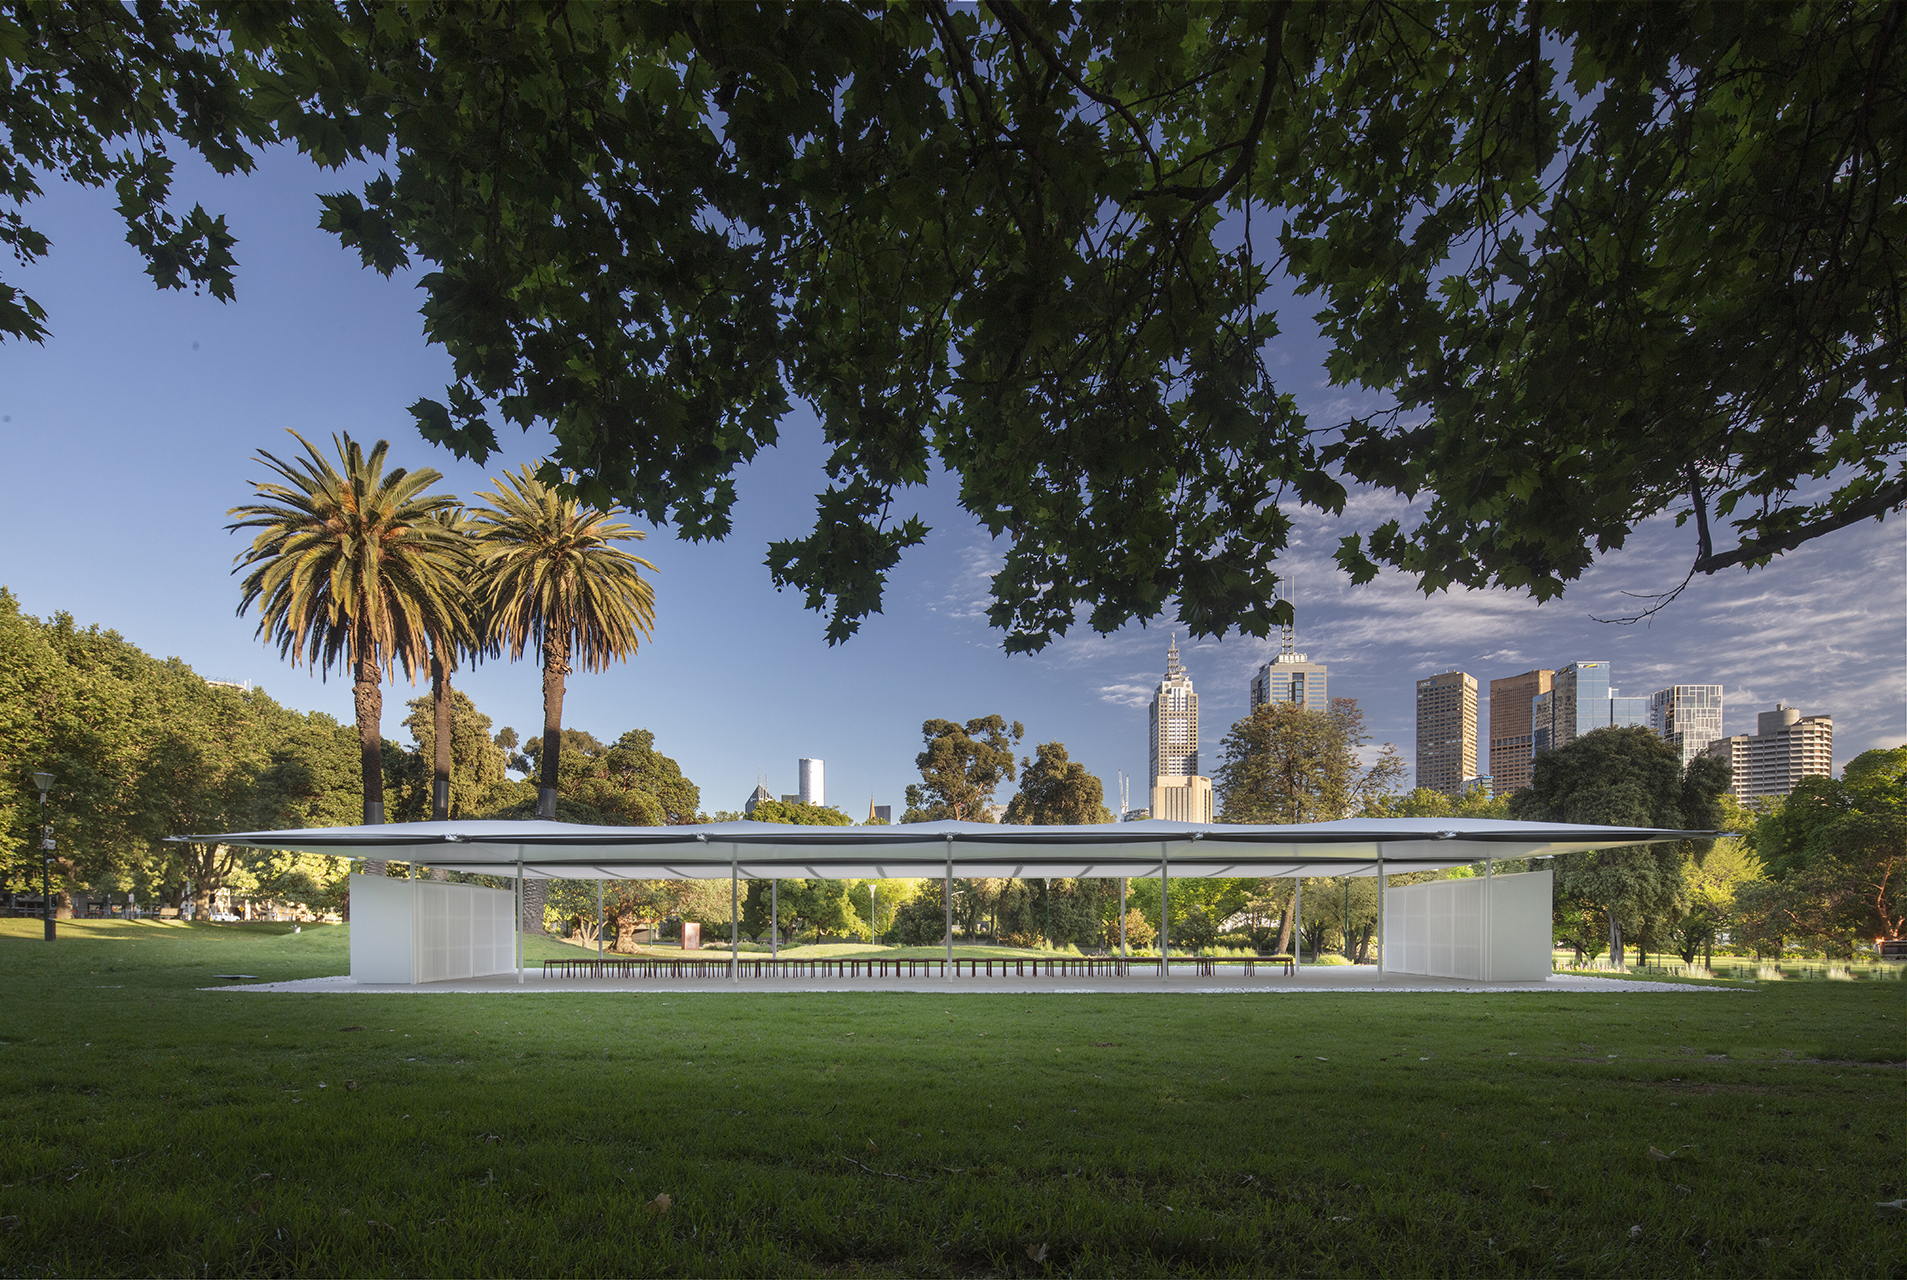 The MPavilion 2019 by Glenn Murcutt sits prudently in the urban fabric of the city of Melbourne | MPavilion 2019| Australia | Glenn Murcutt| STIRworld